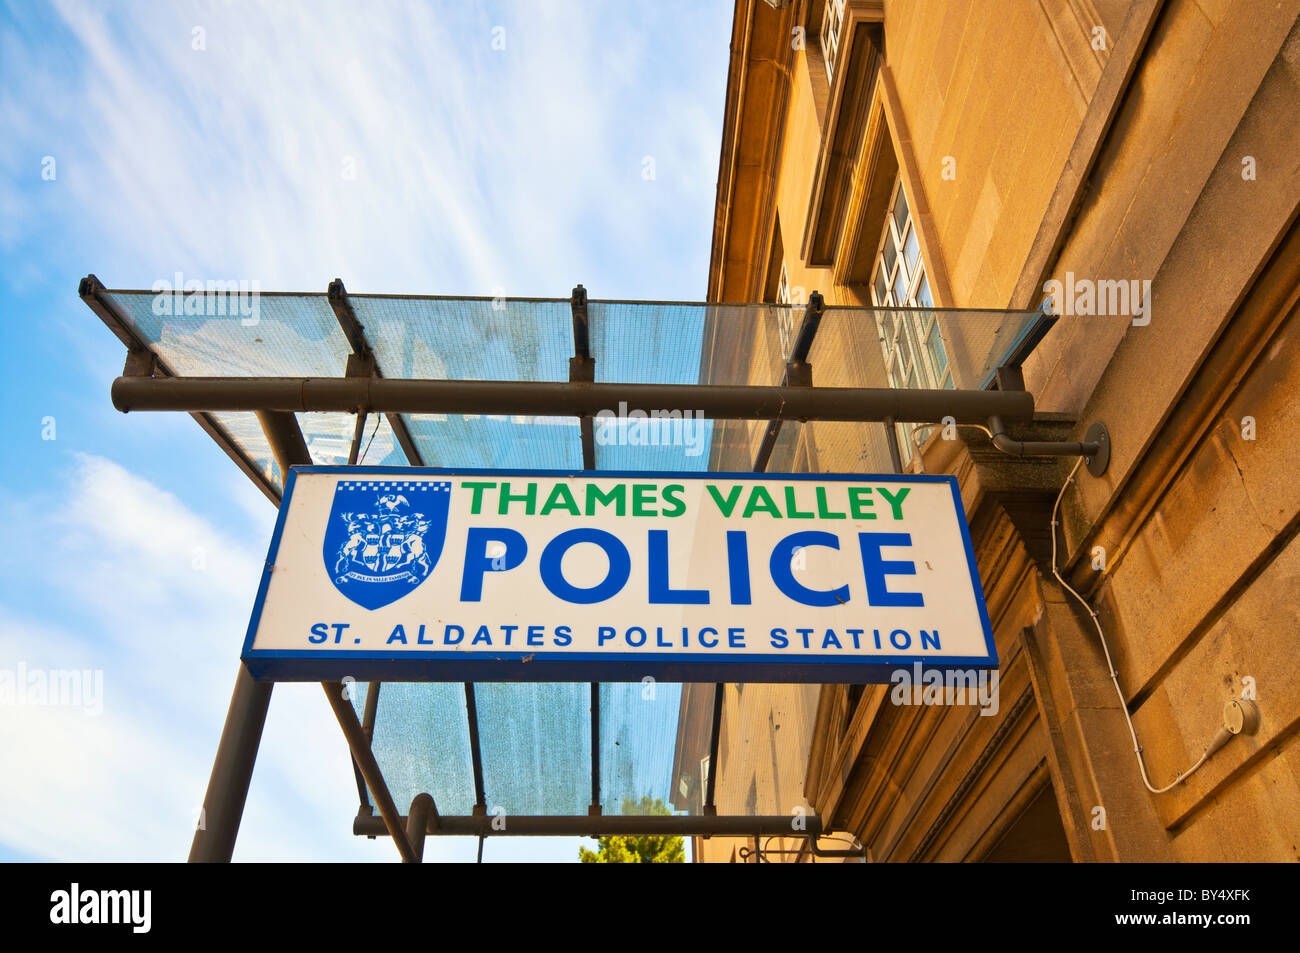 Police Station in Oxford, Thames Valley Police - Stock Image